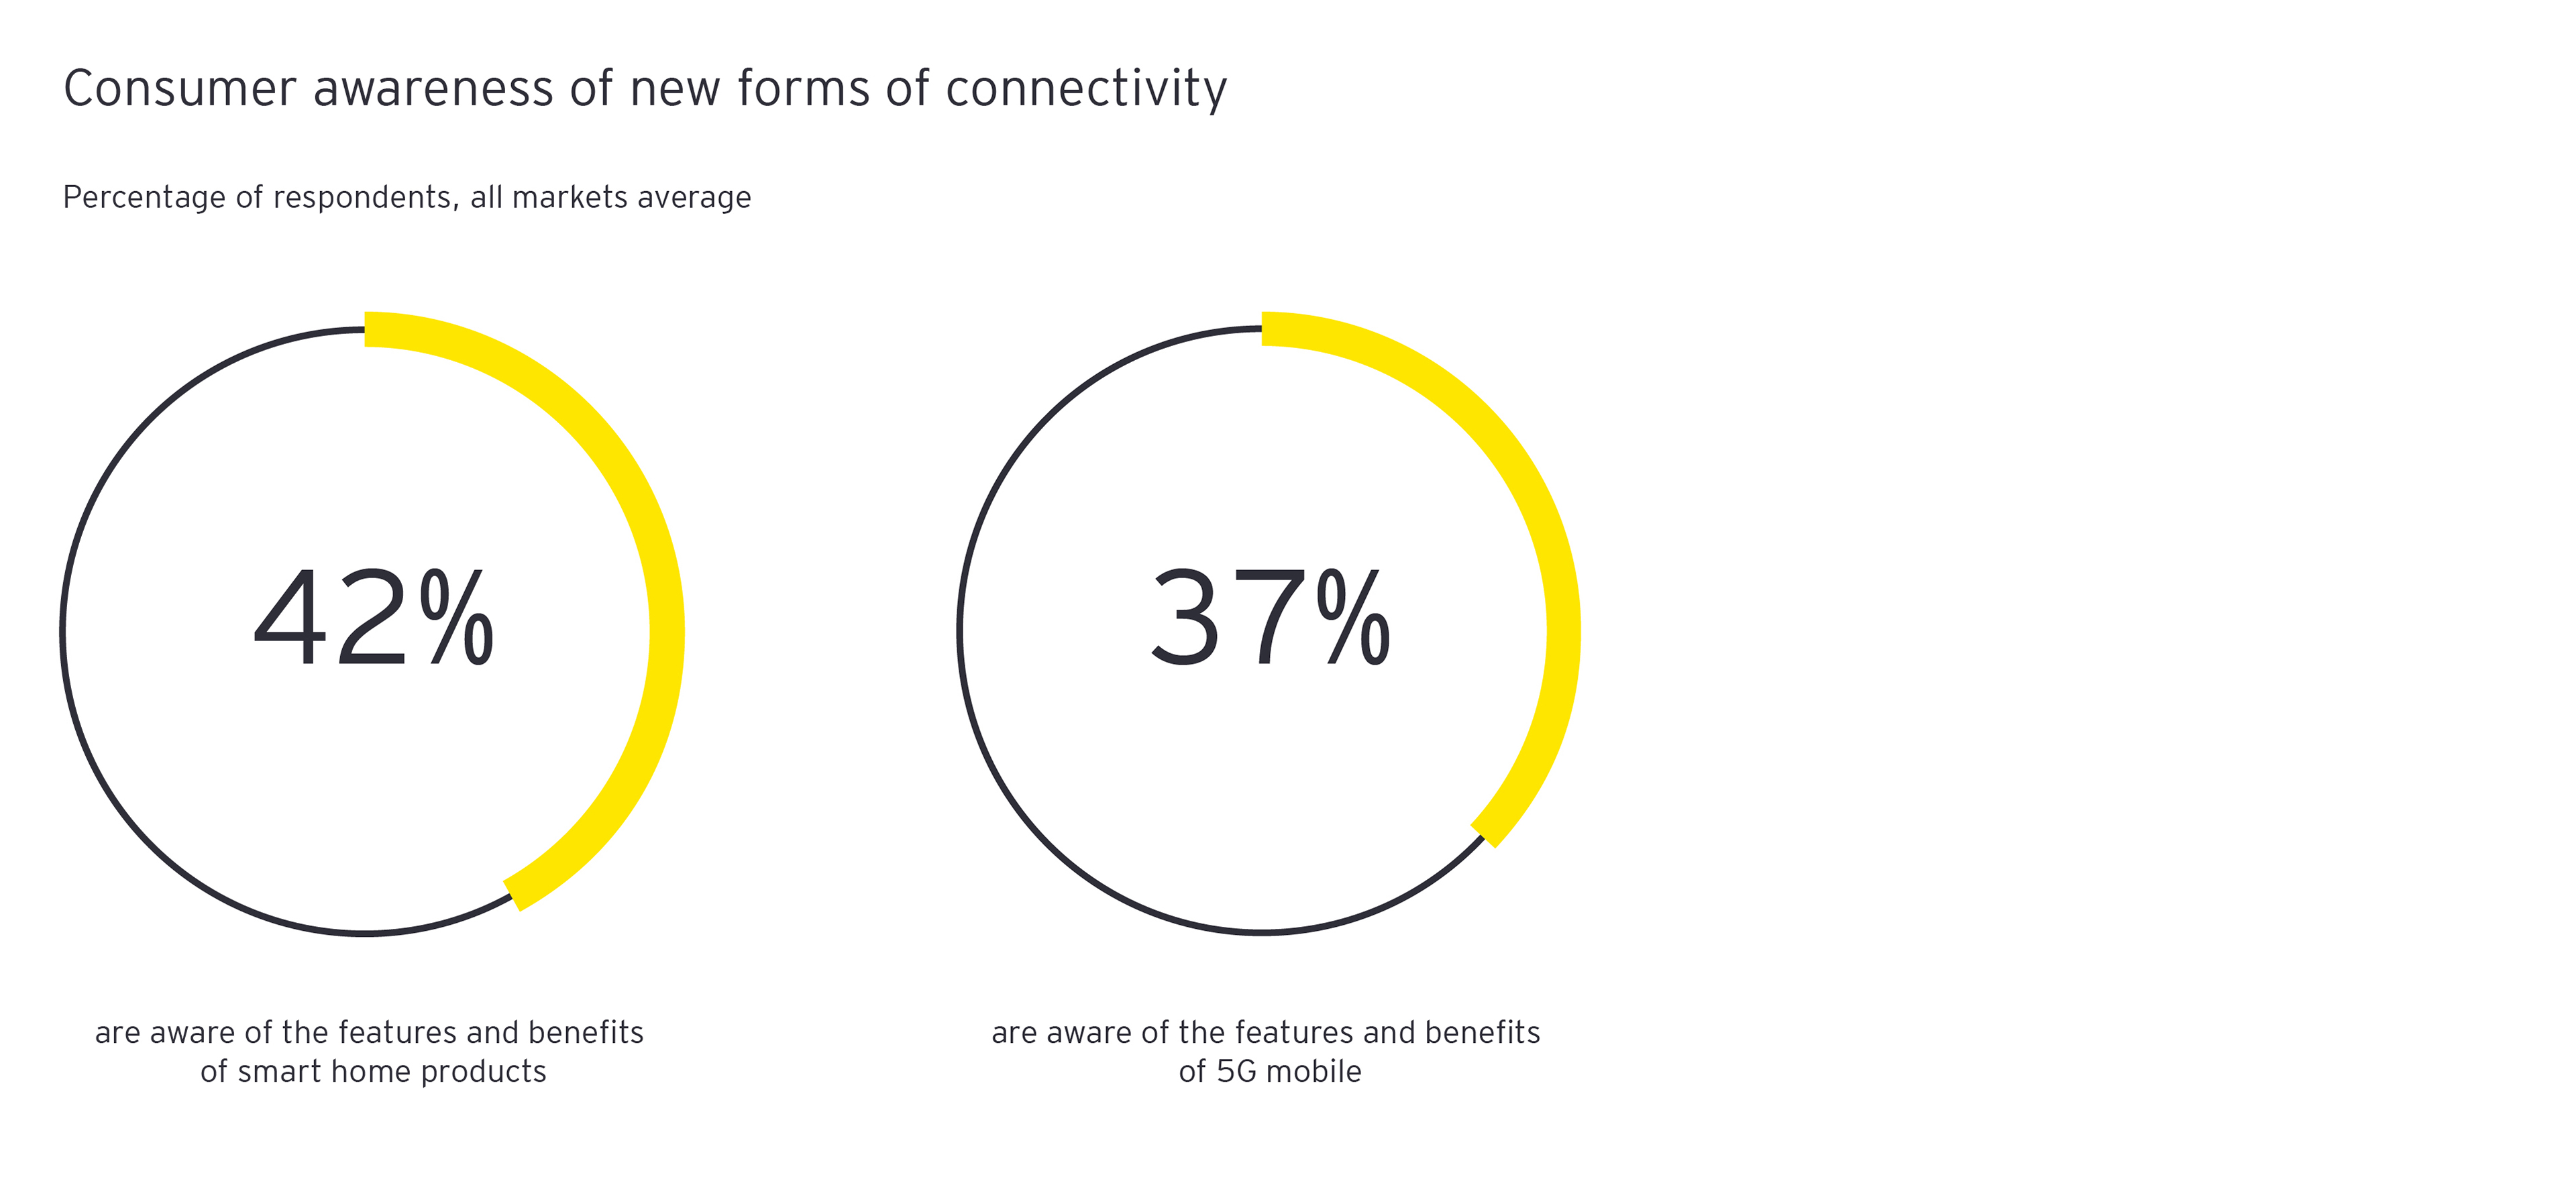 Figure 1: Consumer awareness of new forms of connectivity